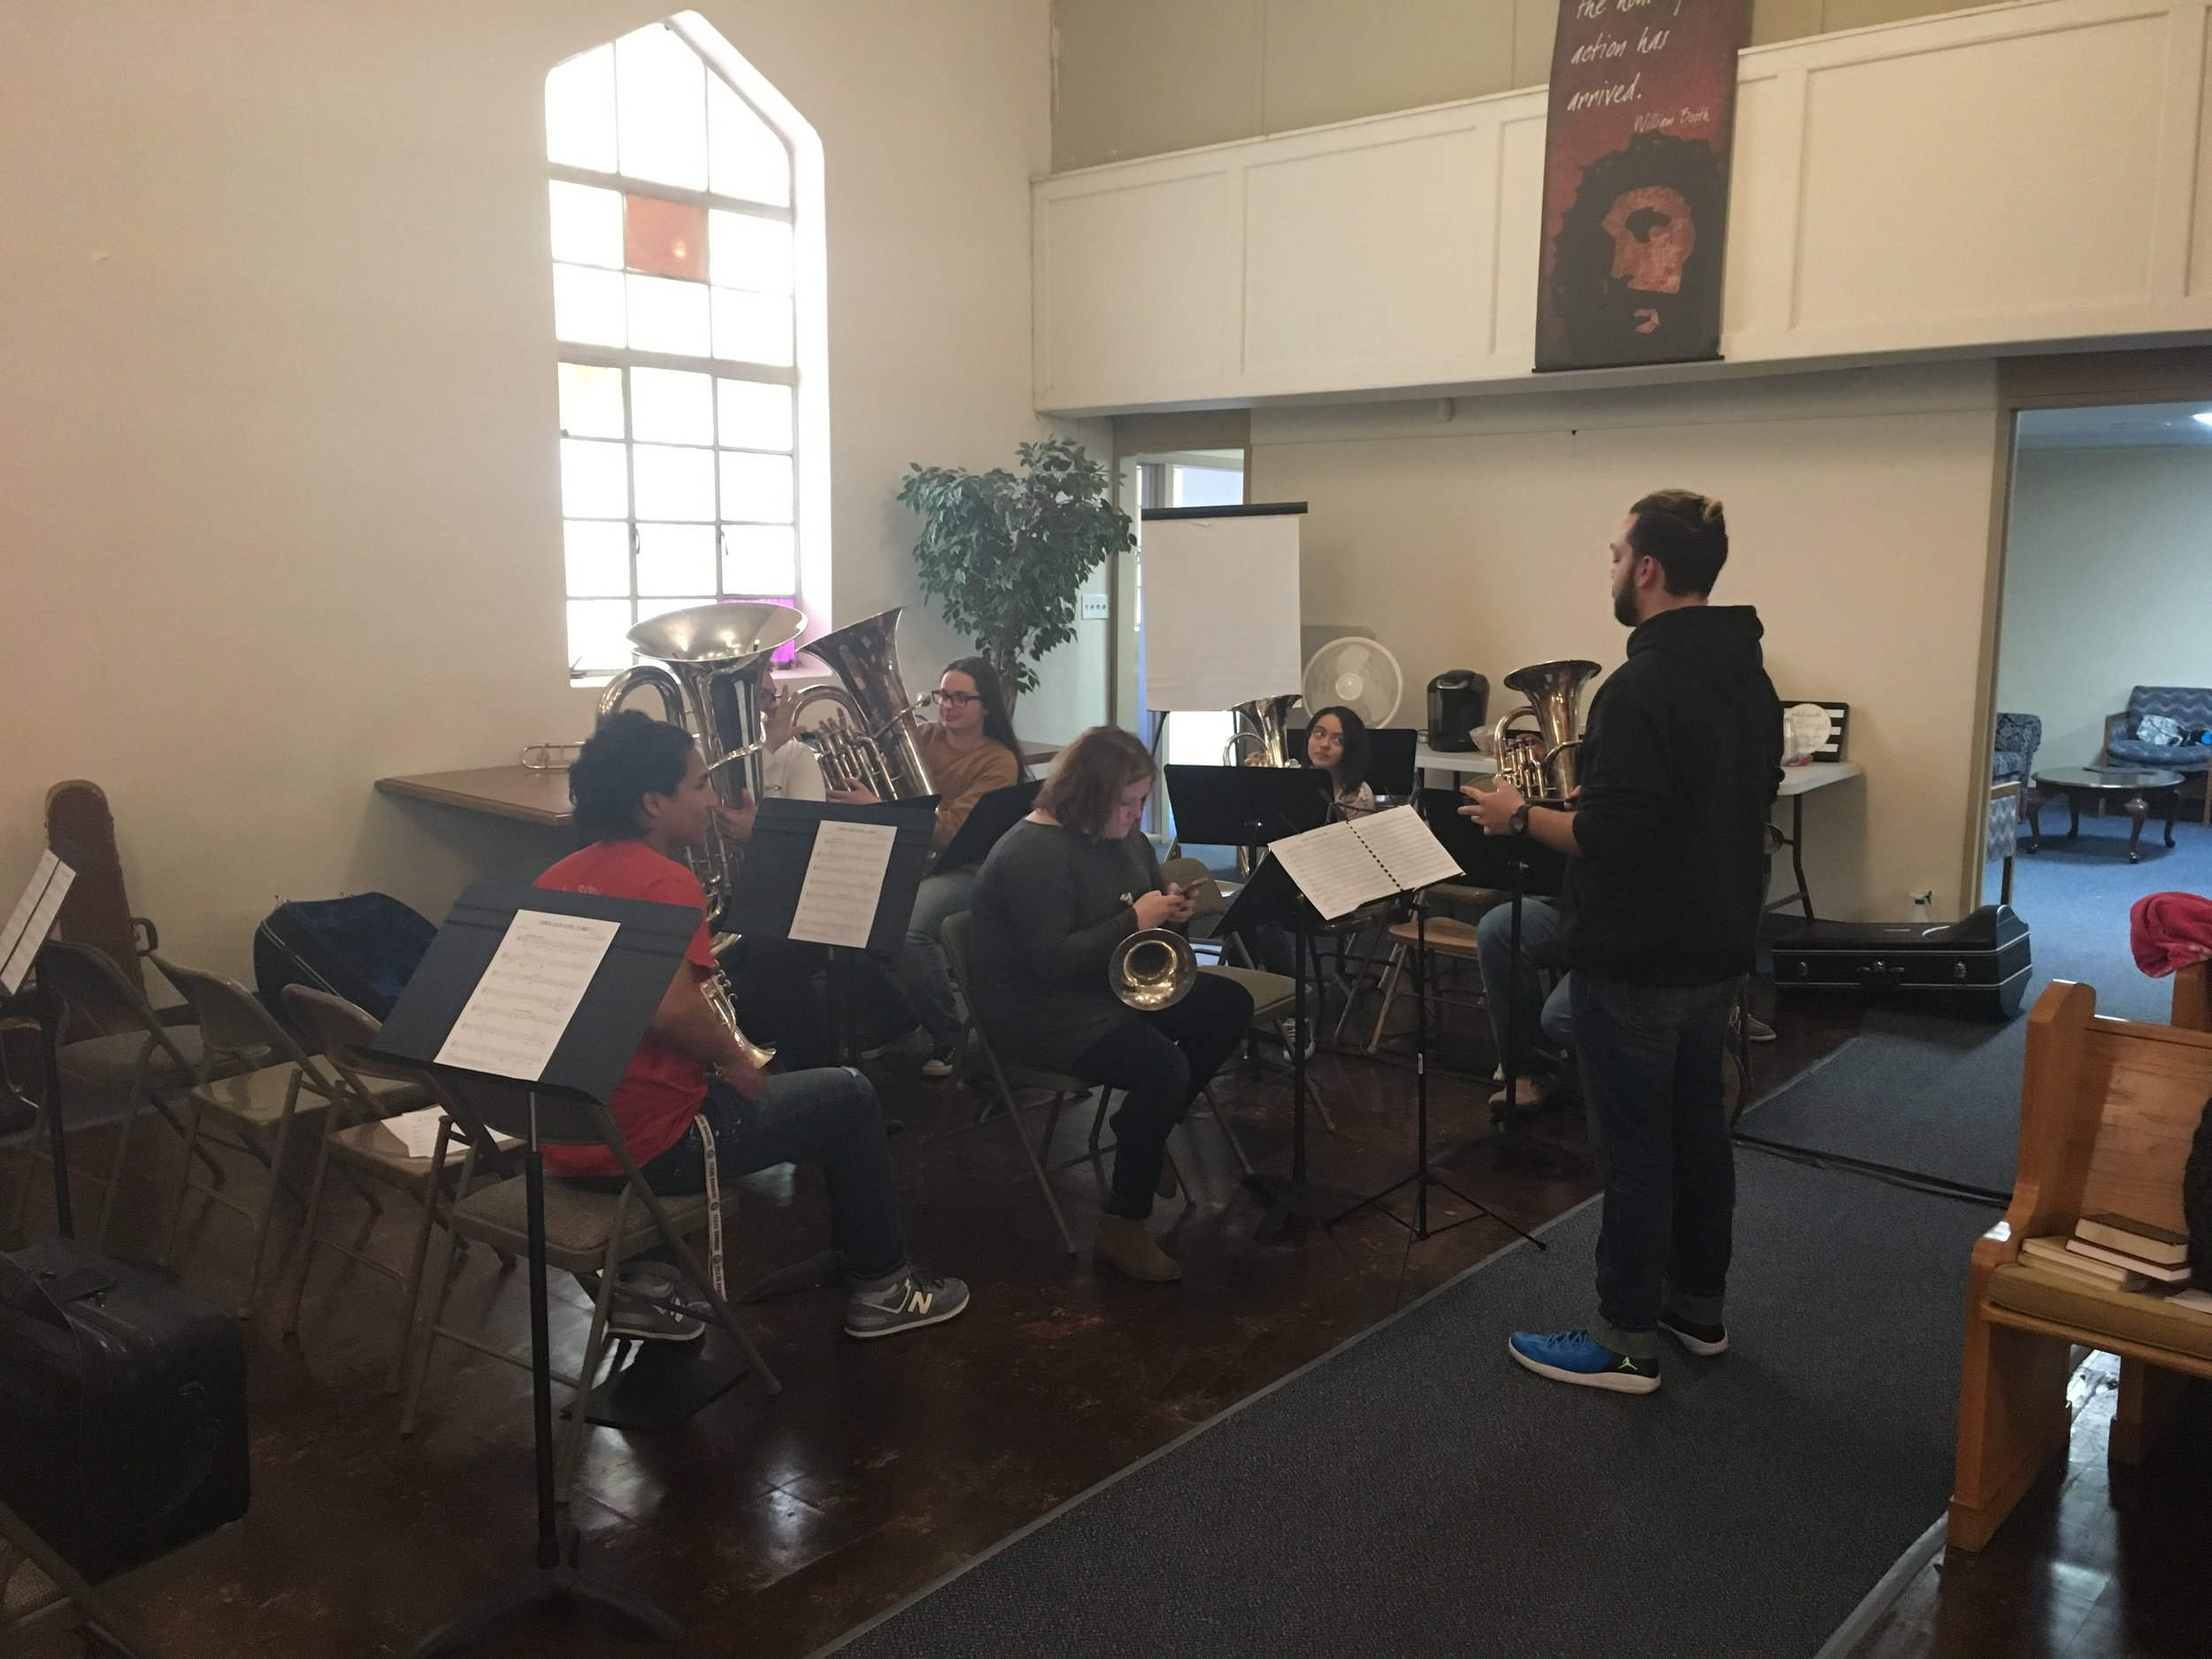 AJ Mitchell led the Brass Band clinic.